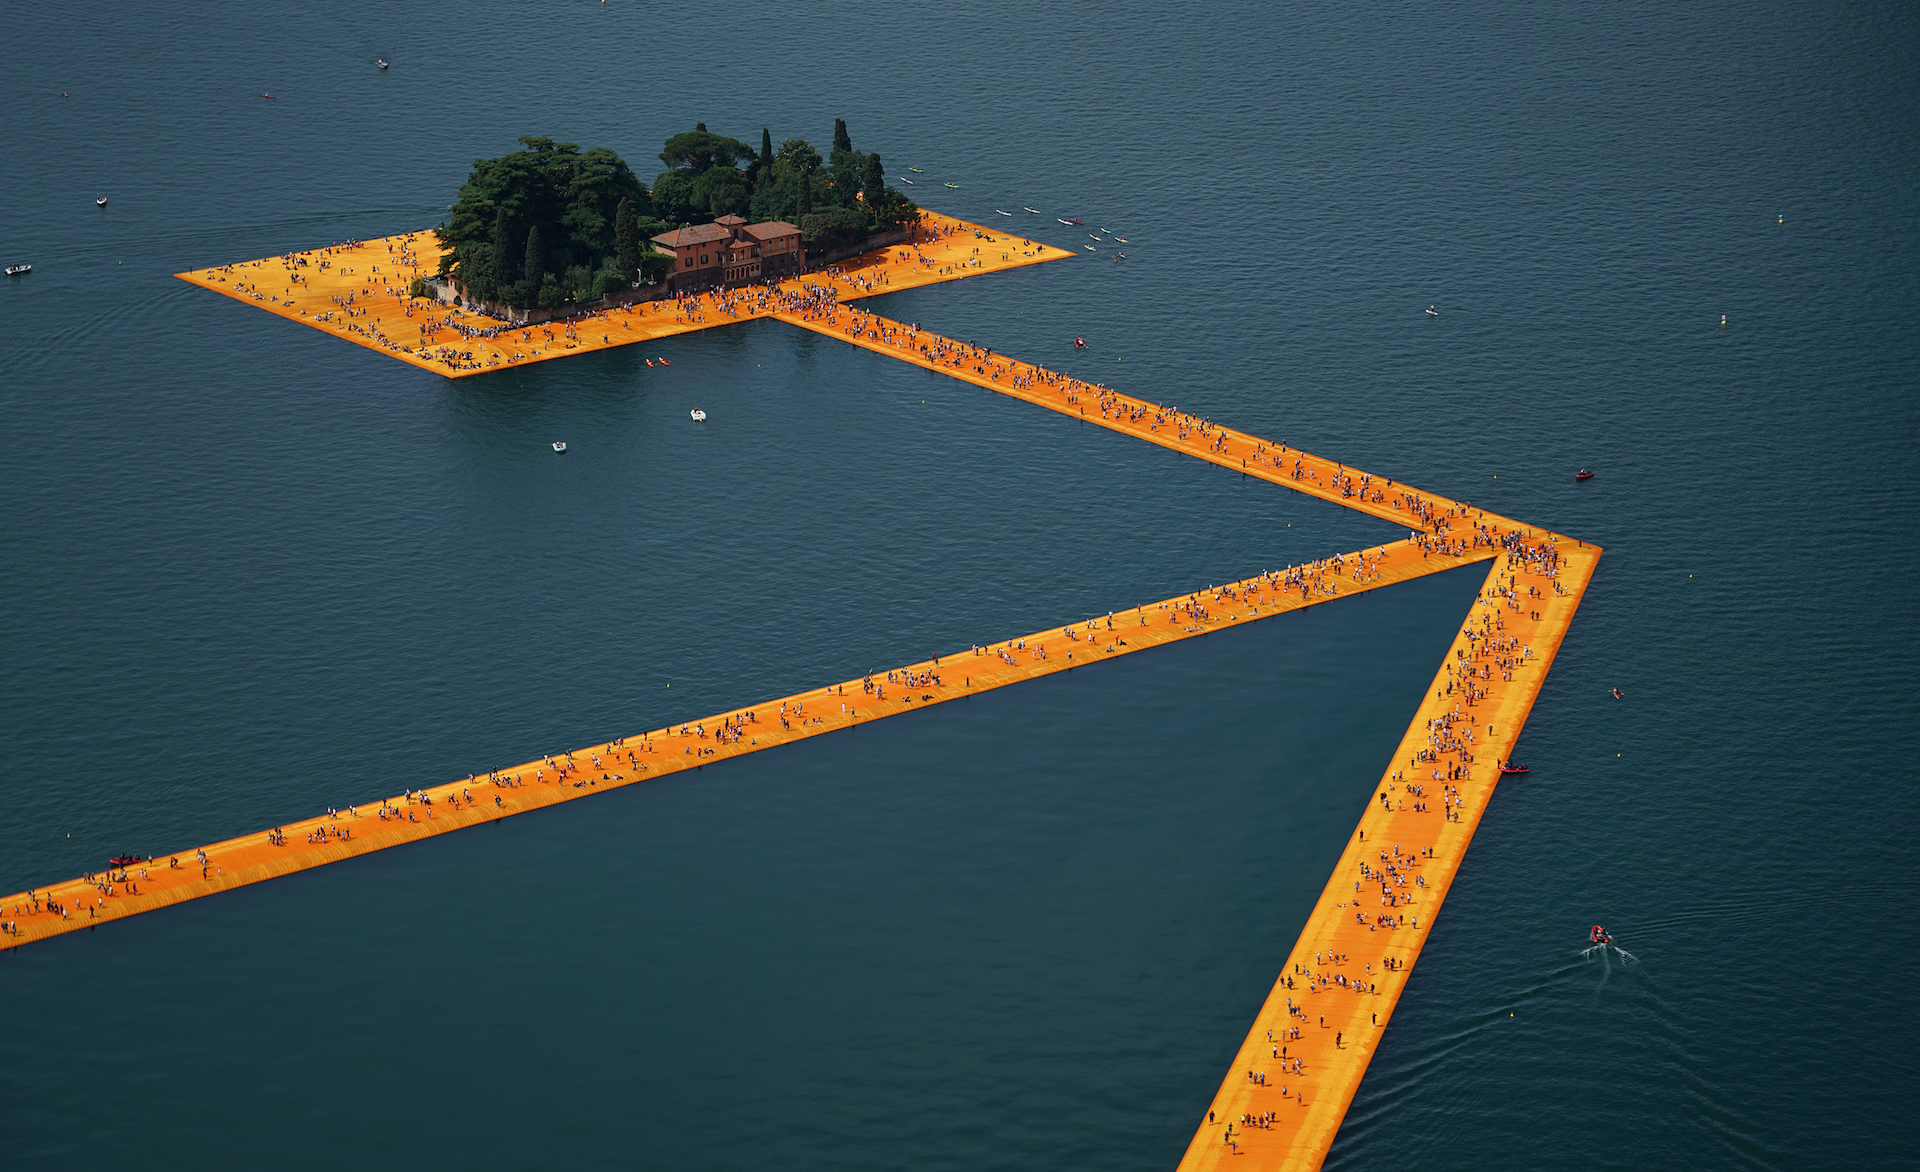 landscape artist Christo rip The Floating Piers Jeanne-Claude